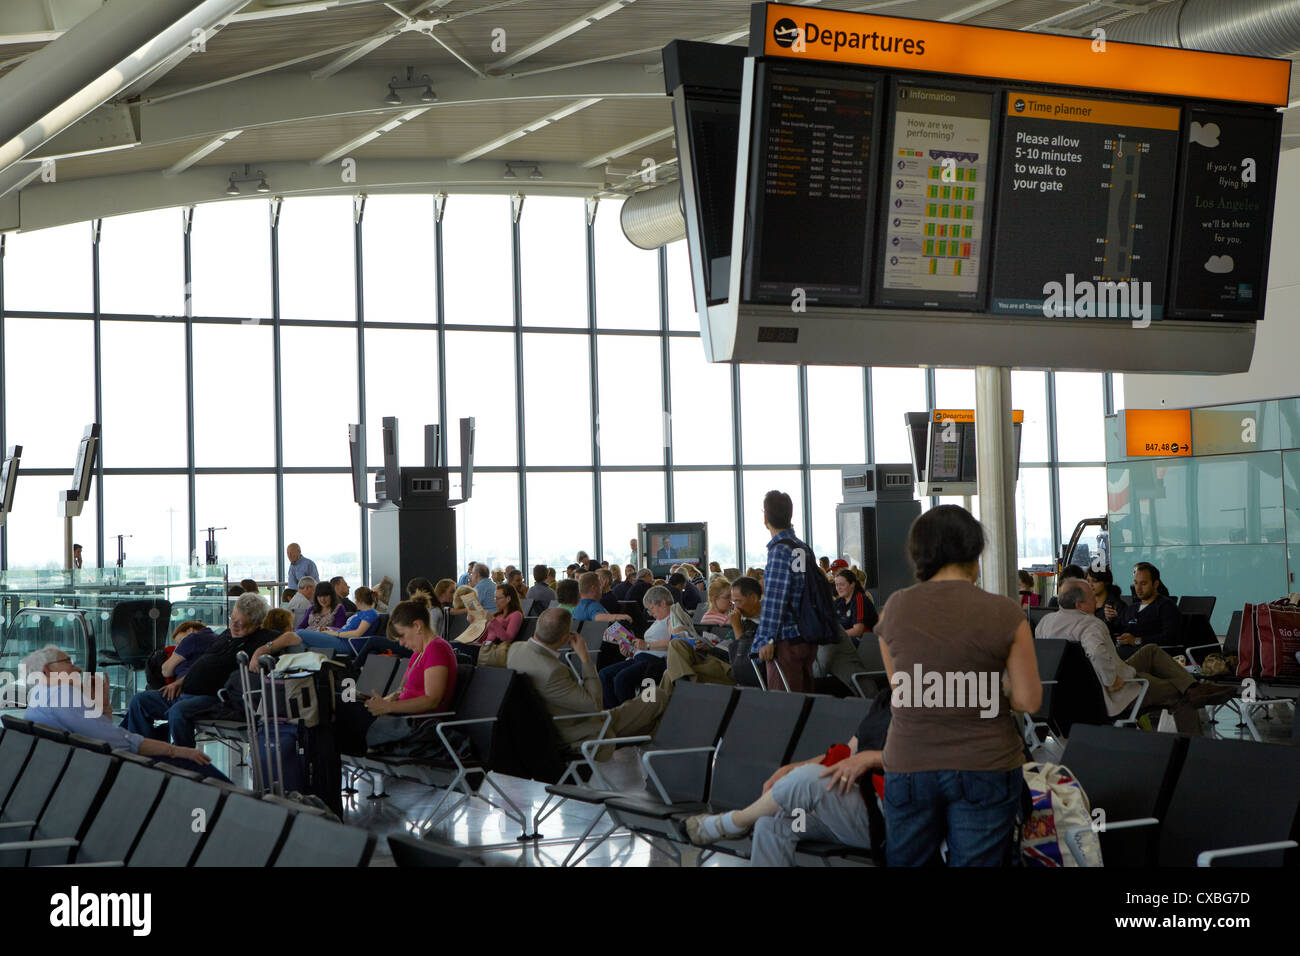 Terminal 5 departure hall, Heathrow Airport, UK - Stock Image